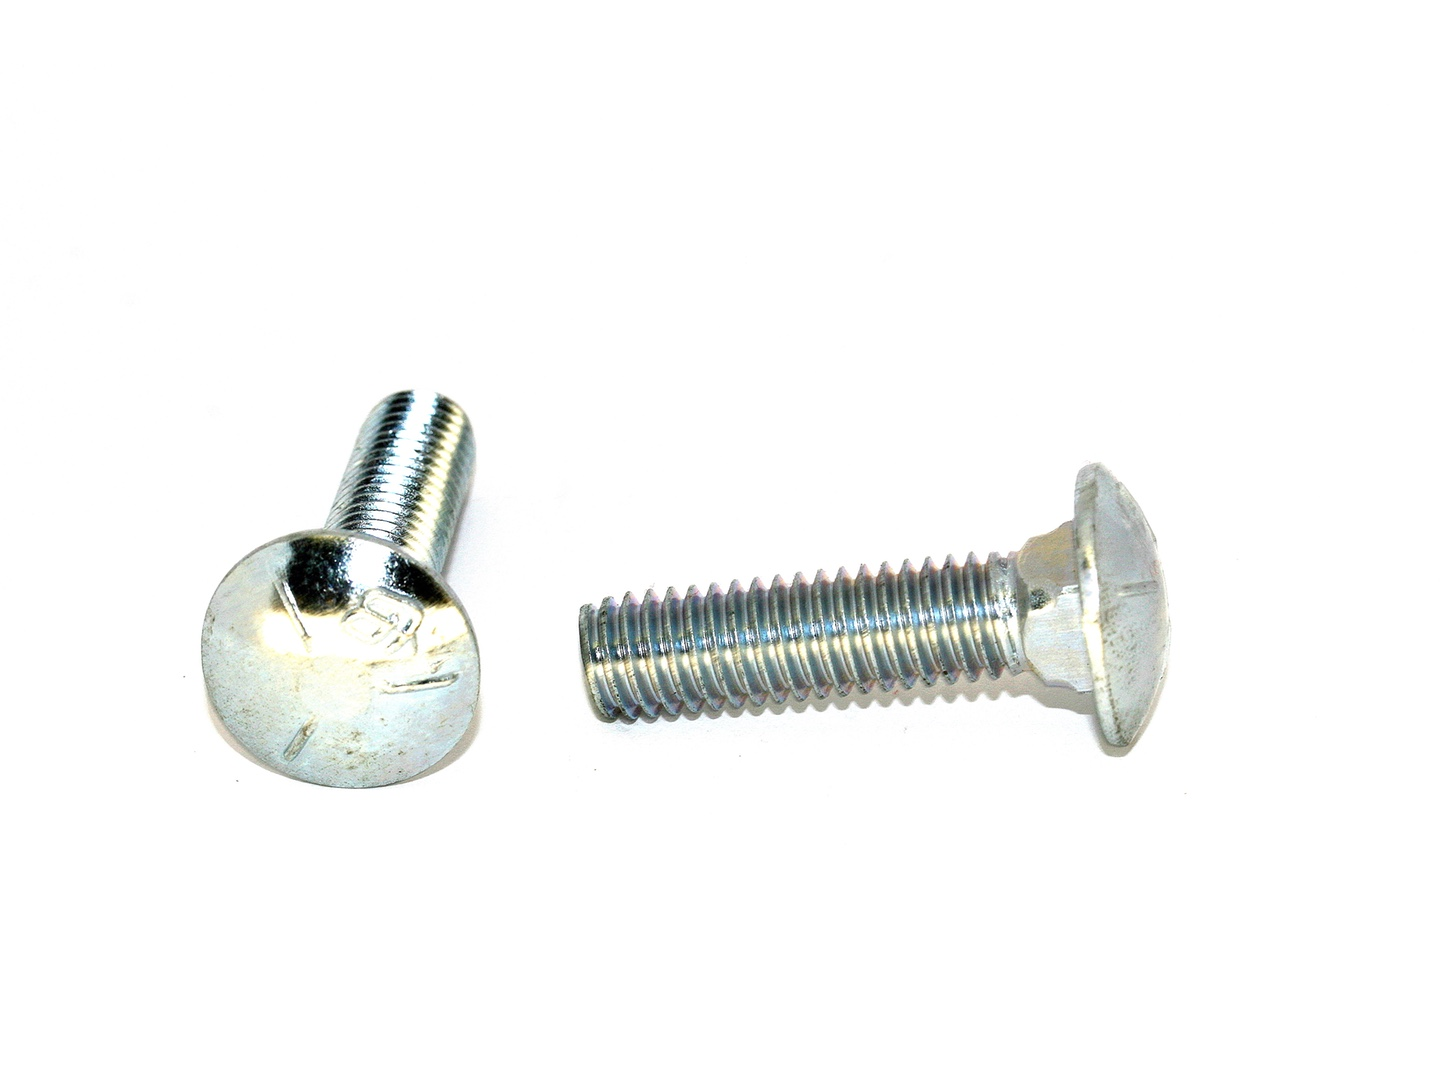 RIBBED NECK CARRIAGE BOLT